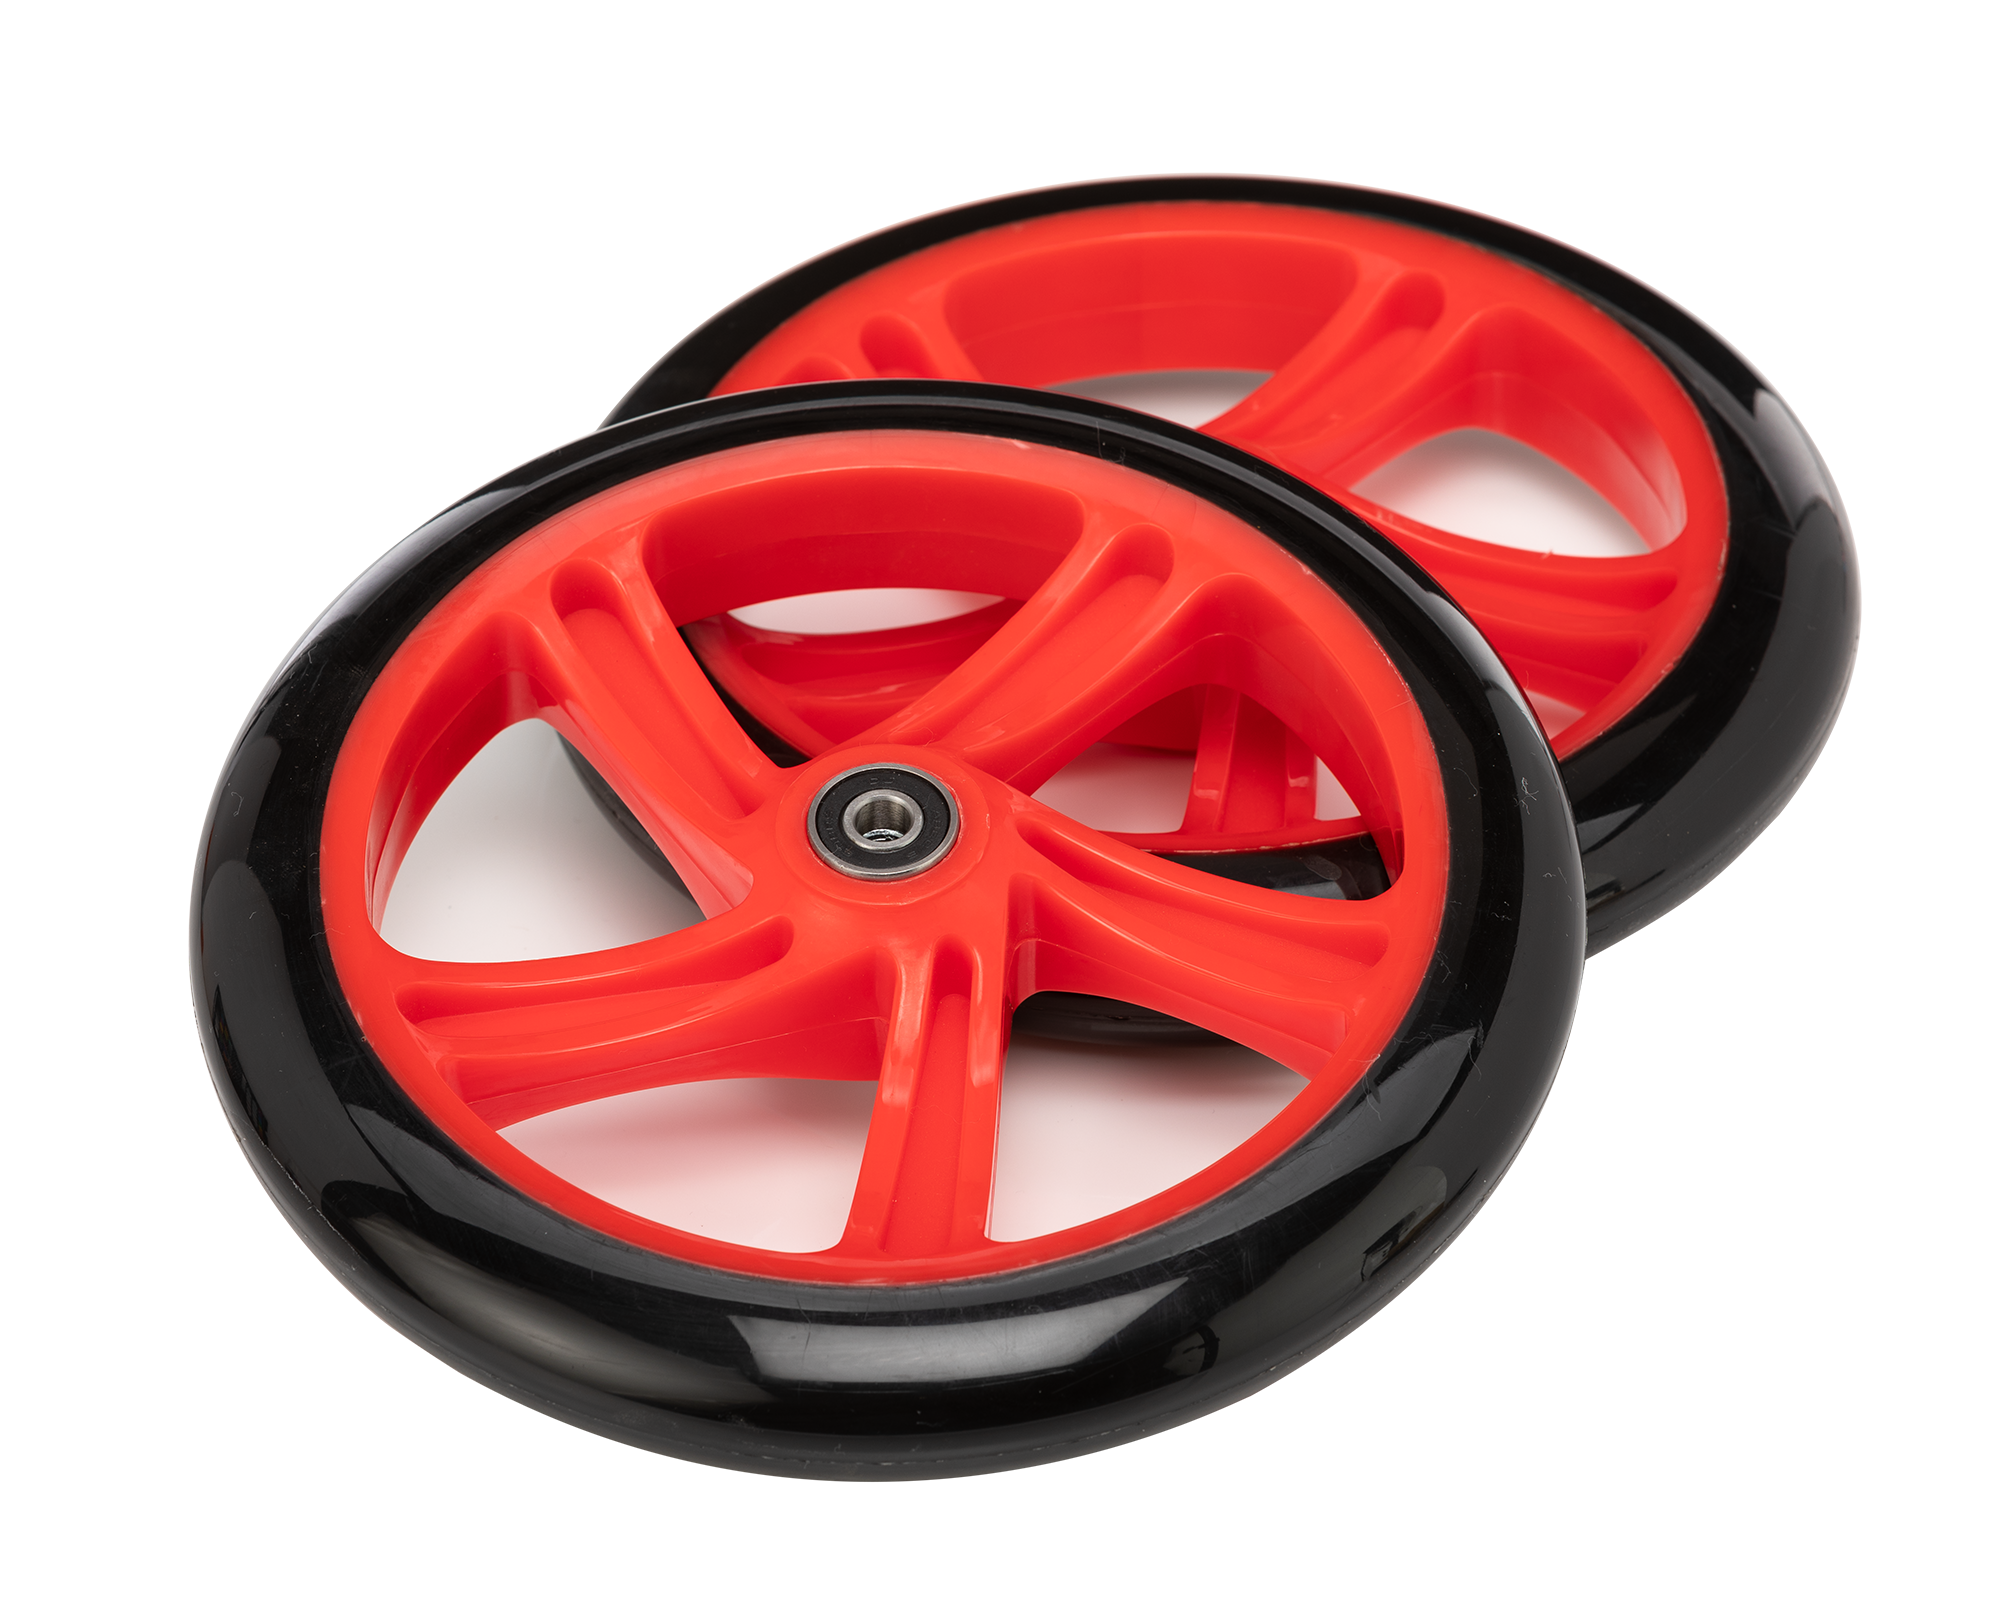 Razor Scooter A5 Lux 200mm Wheels - Red - W13013260058